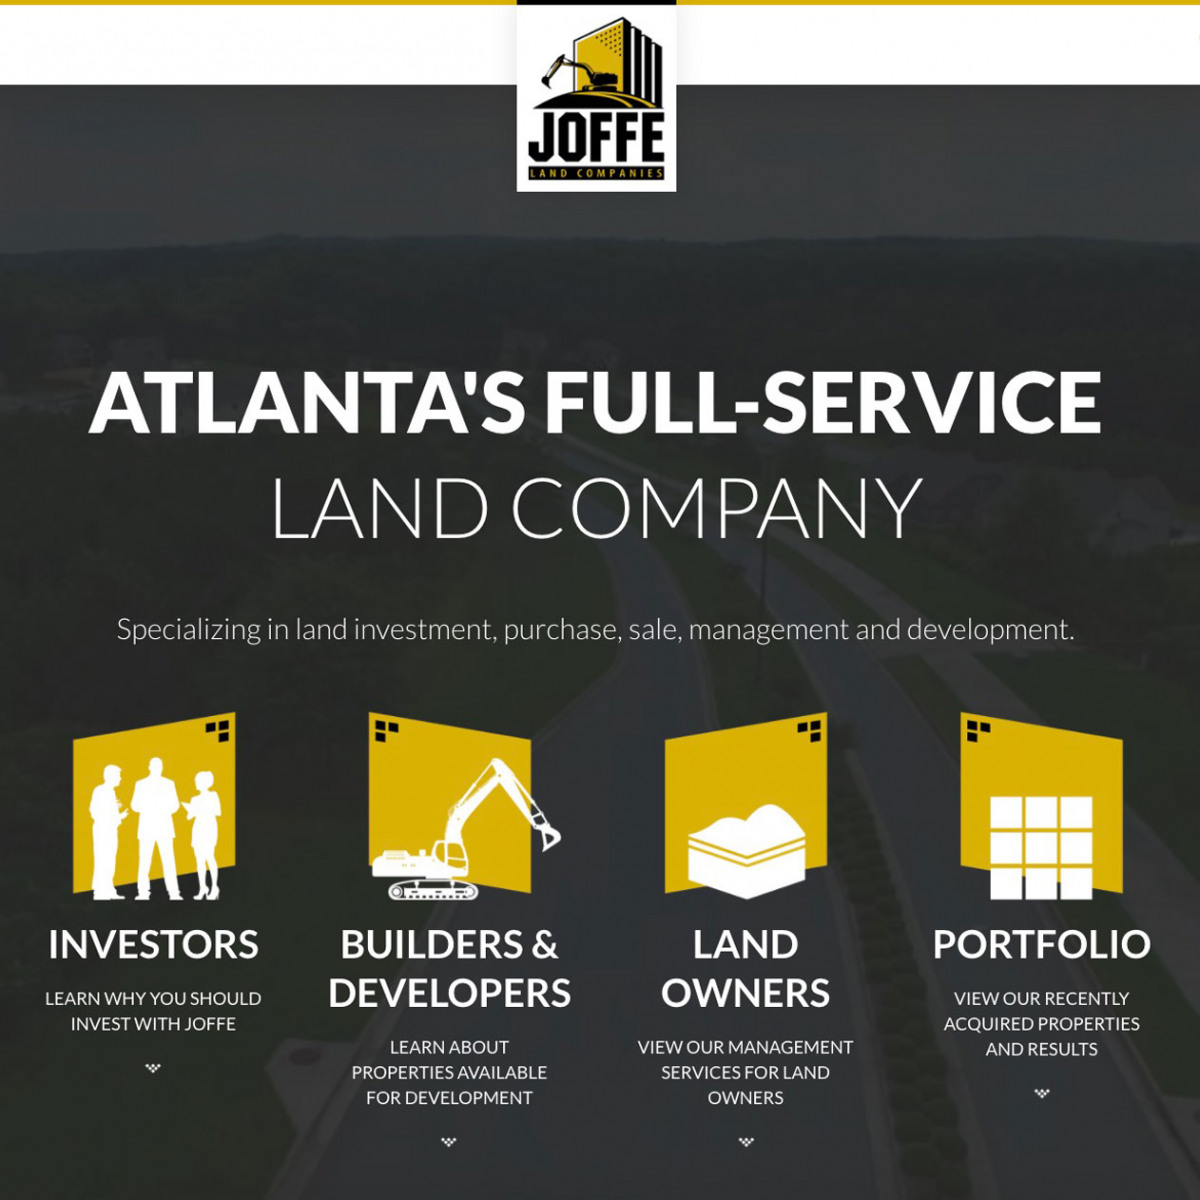 Image of website for Joffe Land Companies